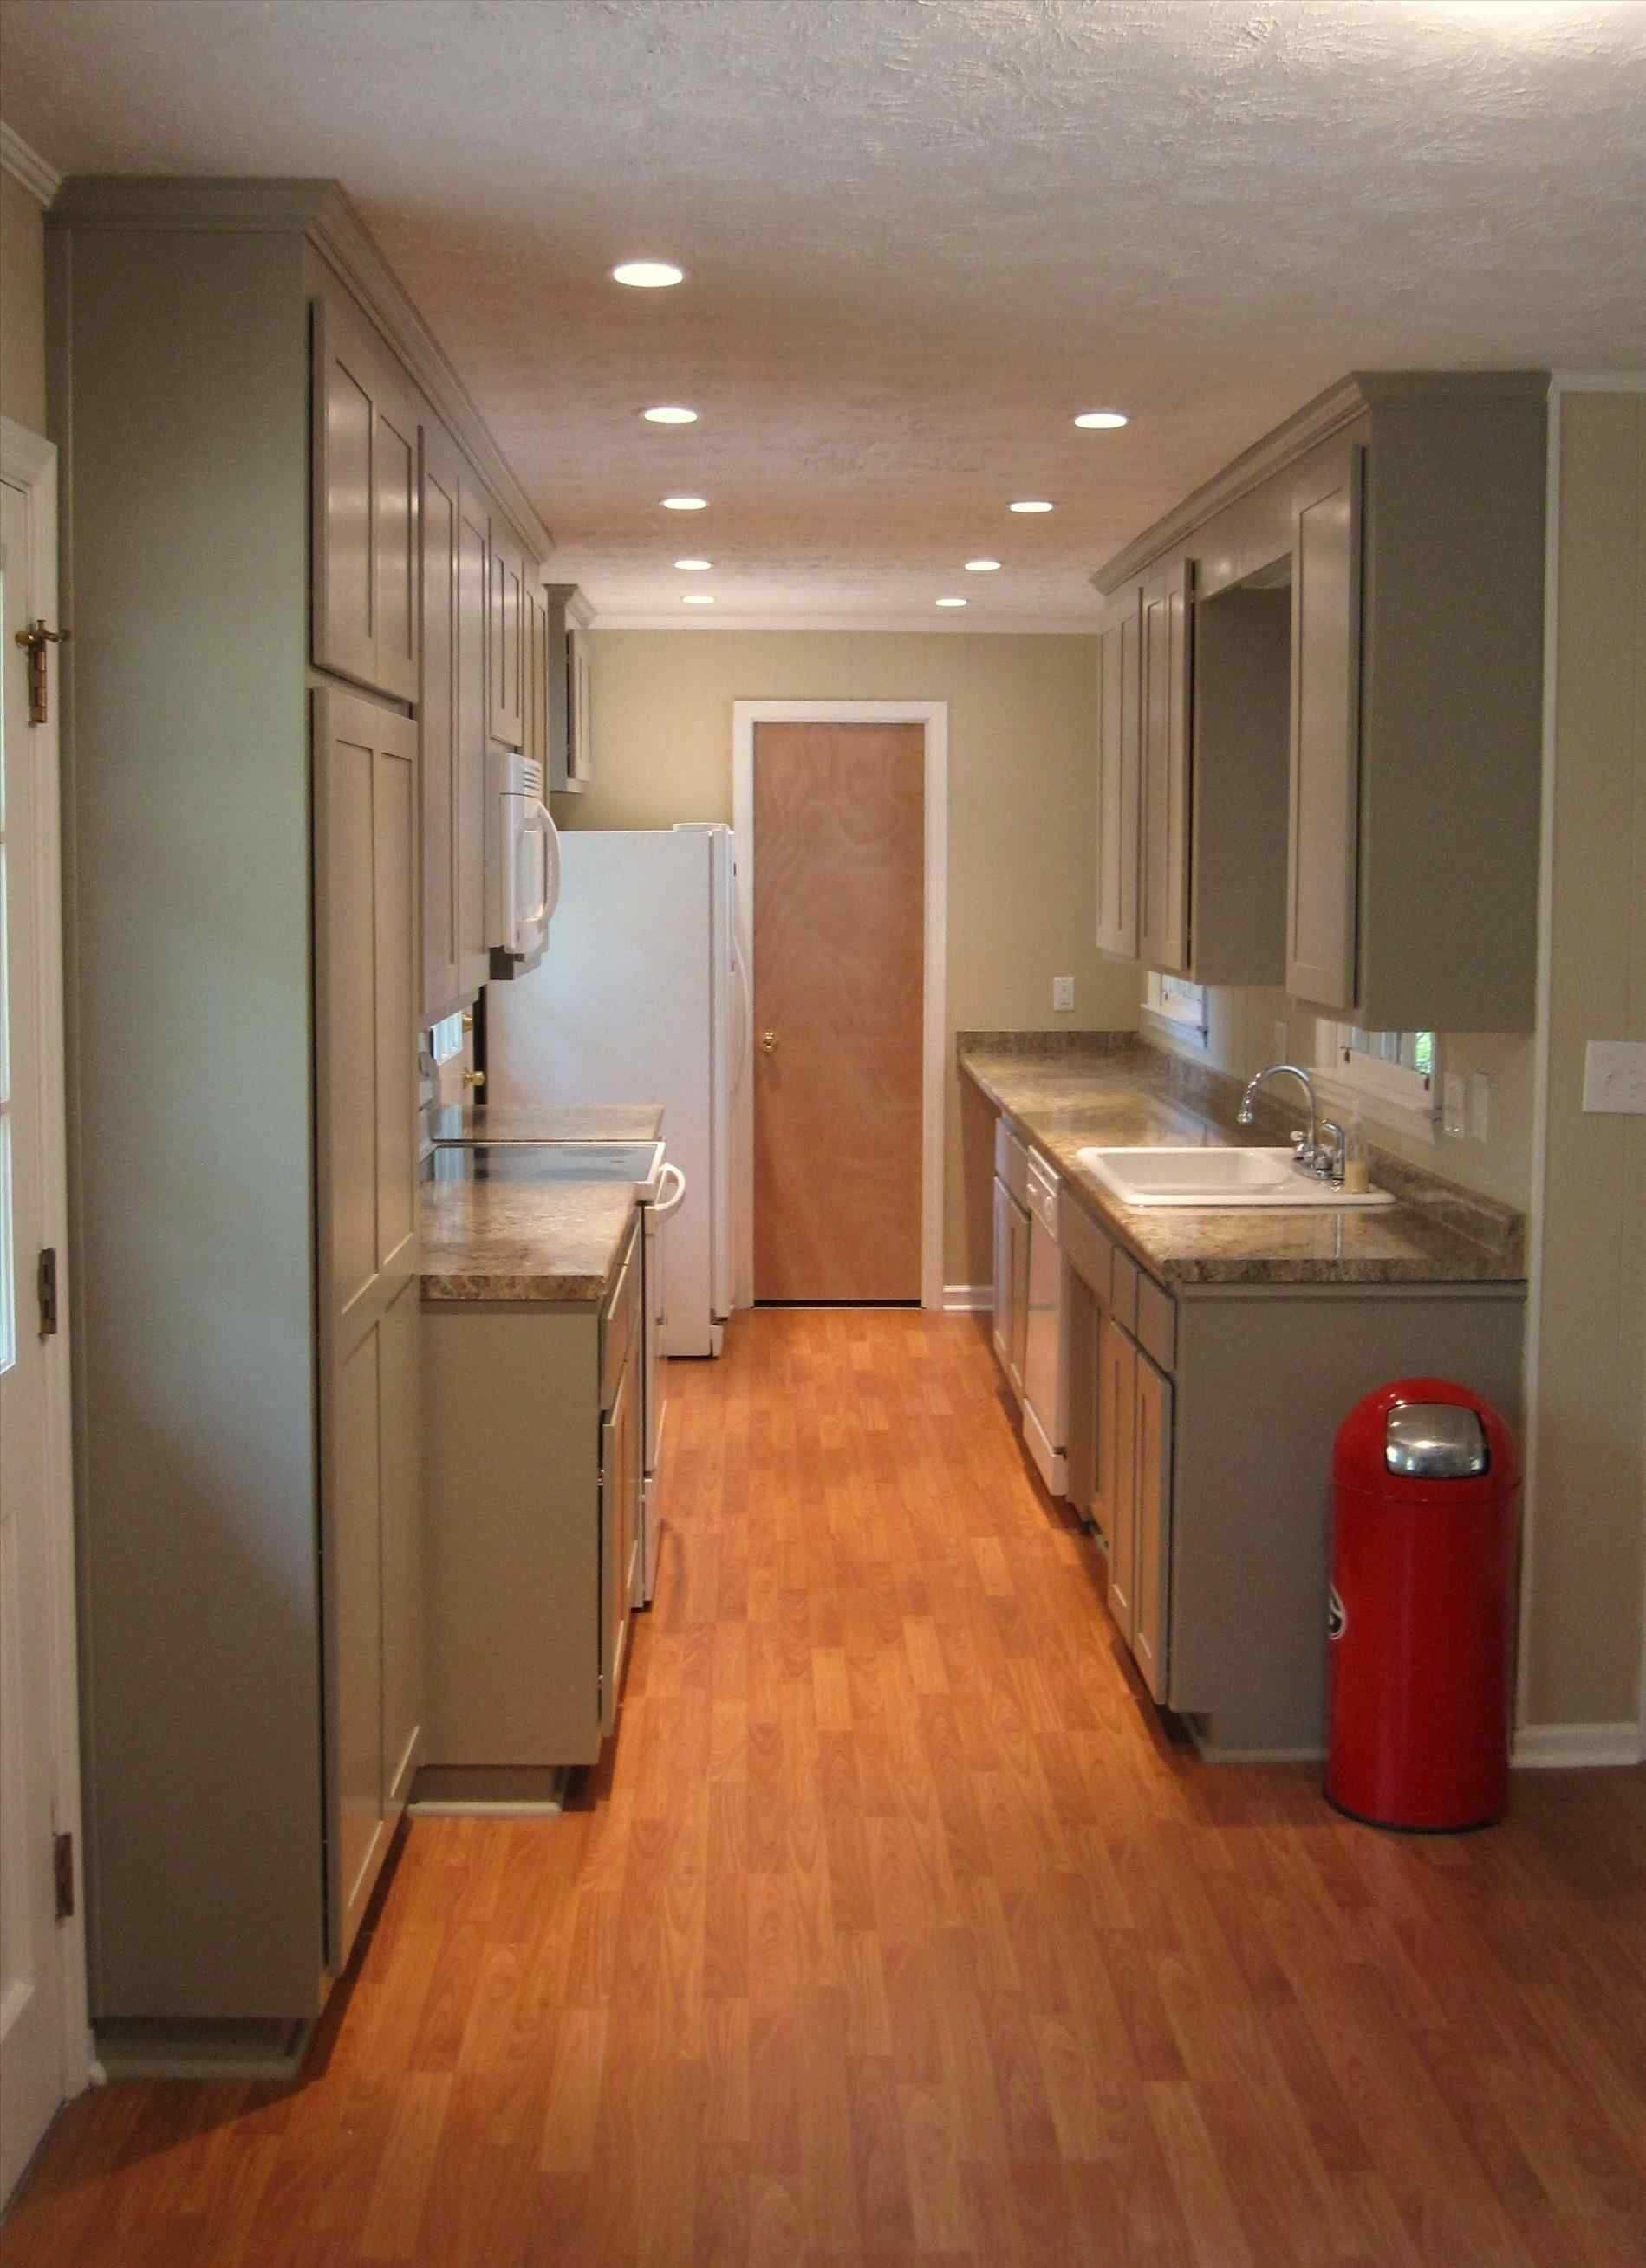 placement of recessed lighting in galley kitchen - Google ...